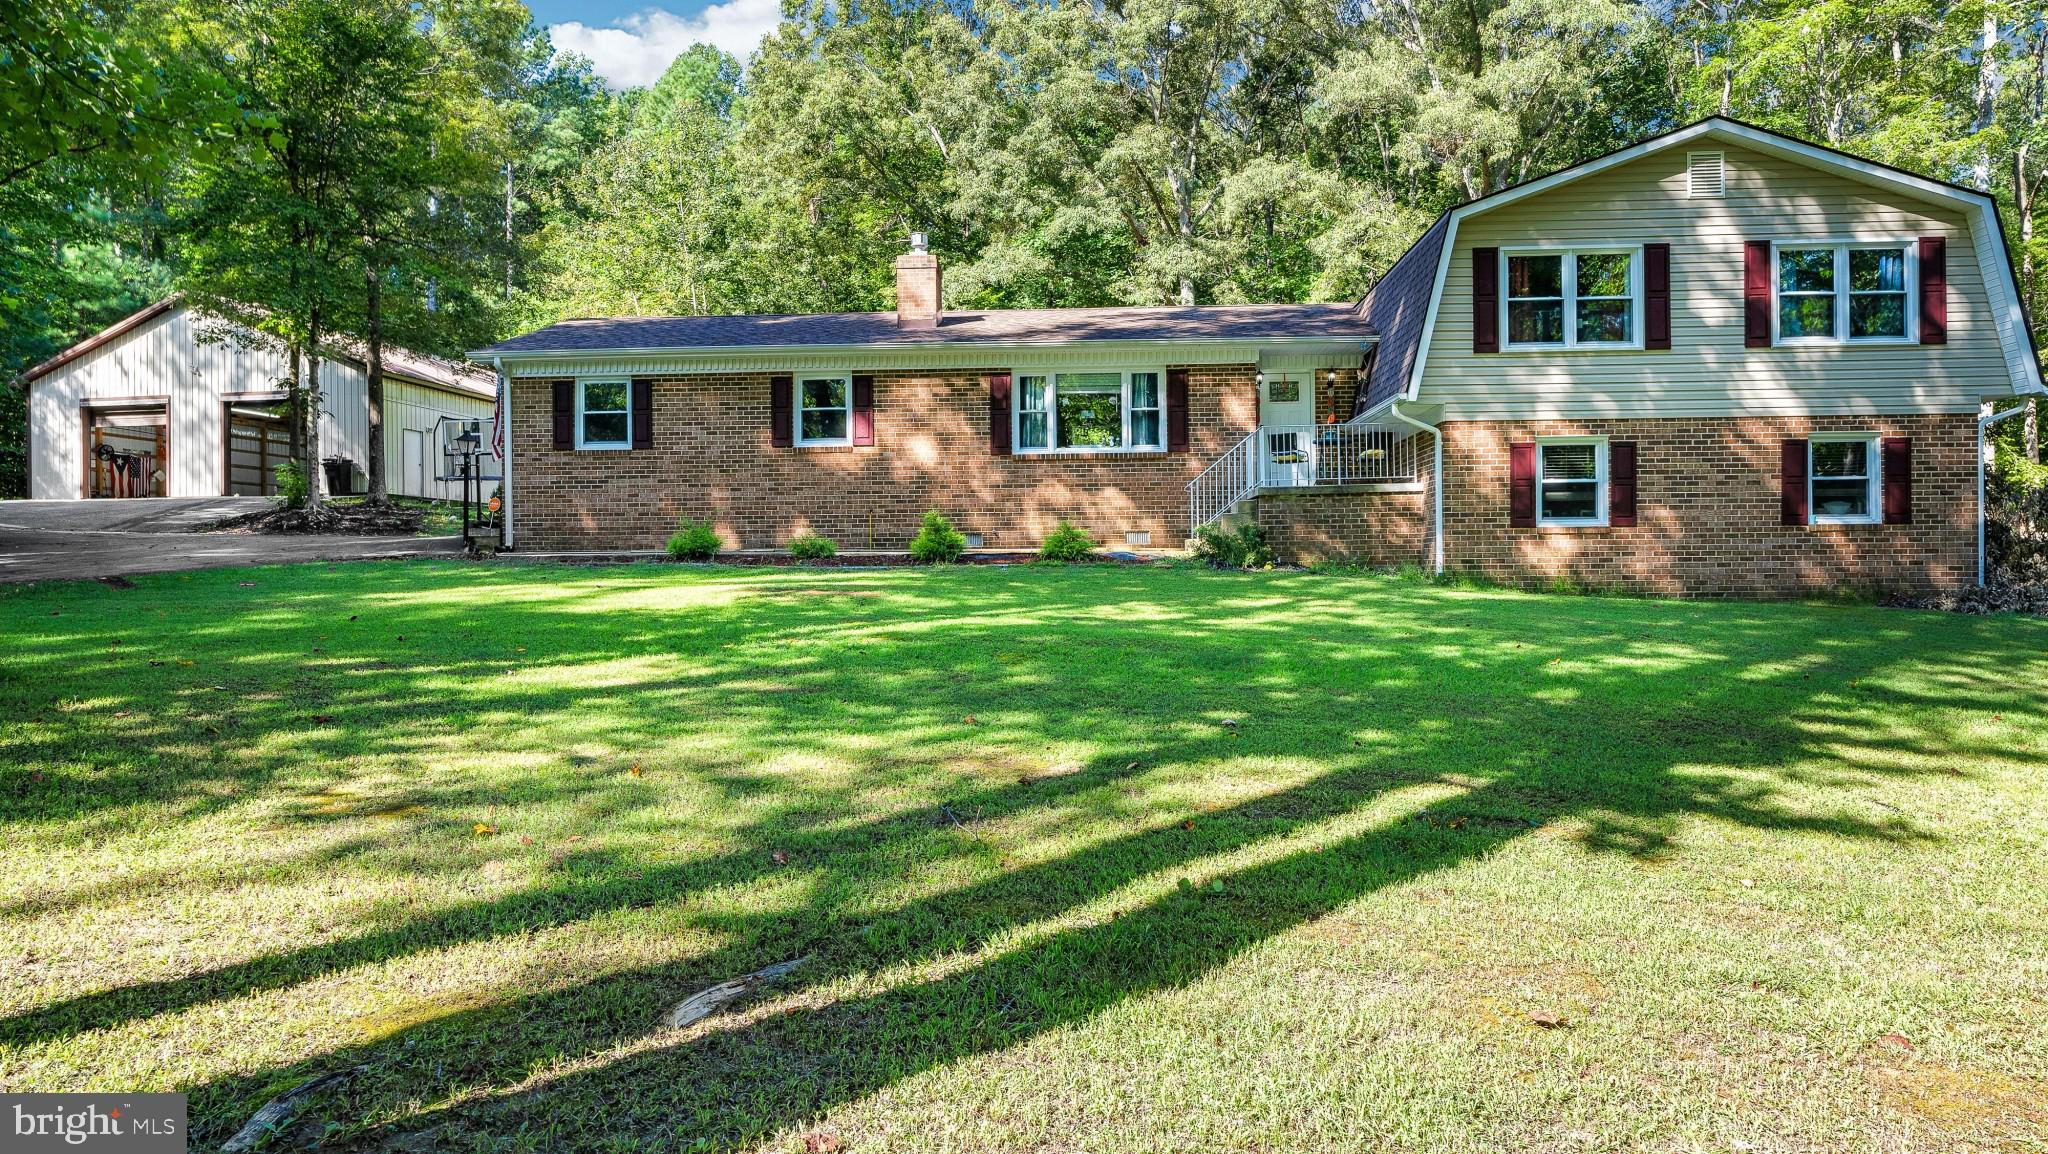 Welcome Home! This Beautiful Home has been completely remodeled in 2019. While the owners hate to le